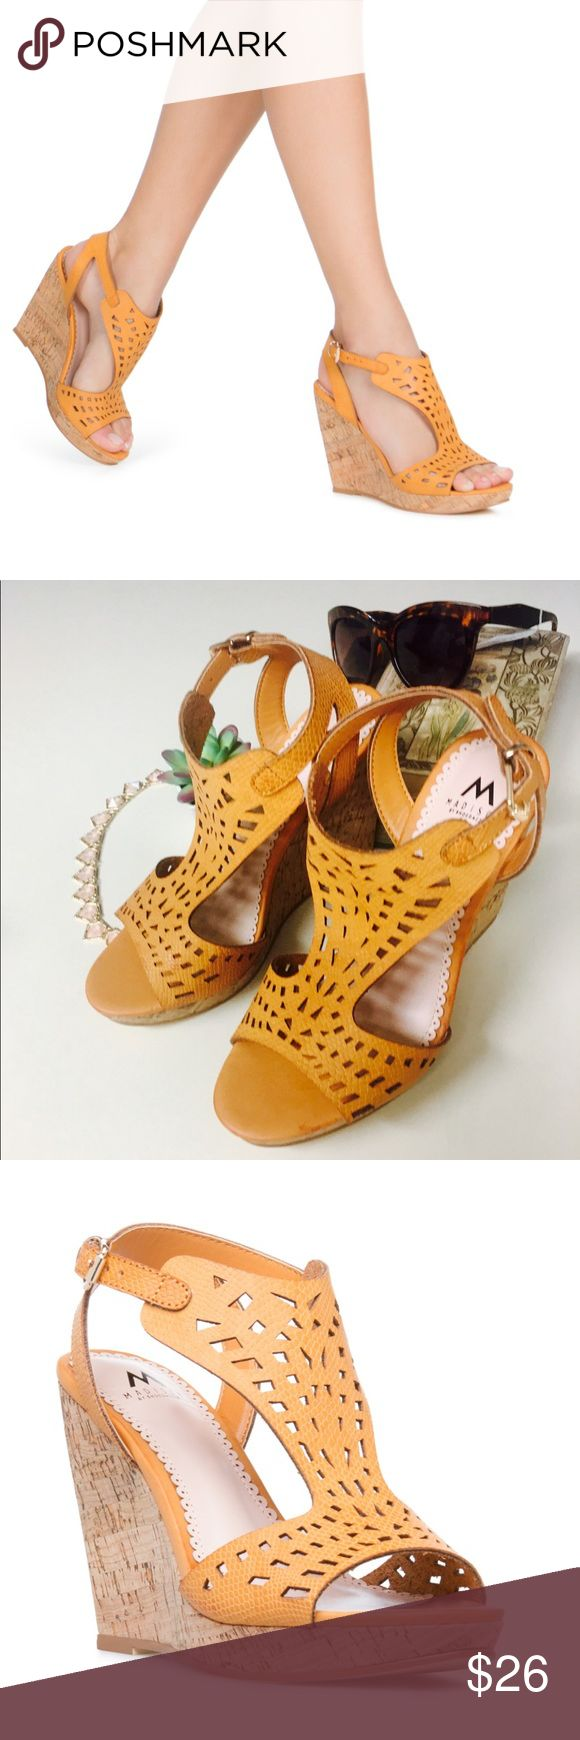 Shoedazzle-Madison line Valdria cork style wedge💕 ❤️Madison line by Shoedazzle- 4inch cork style wedge-perfect for the coming months to get that beachy summer chic look😍. This color has hints or darker tan/orange throughout ( yes I checked to make sure it was intentional and not a flaw-see picture #4). These wedges are adorable!!perfect with shorts and a bikini top. They have been tried on but never worn. Bundle to get that 20% discount! ( sunglasses in the background are NWTs Tahari-will…